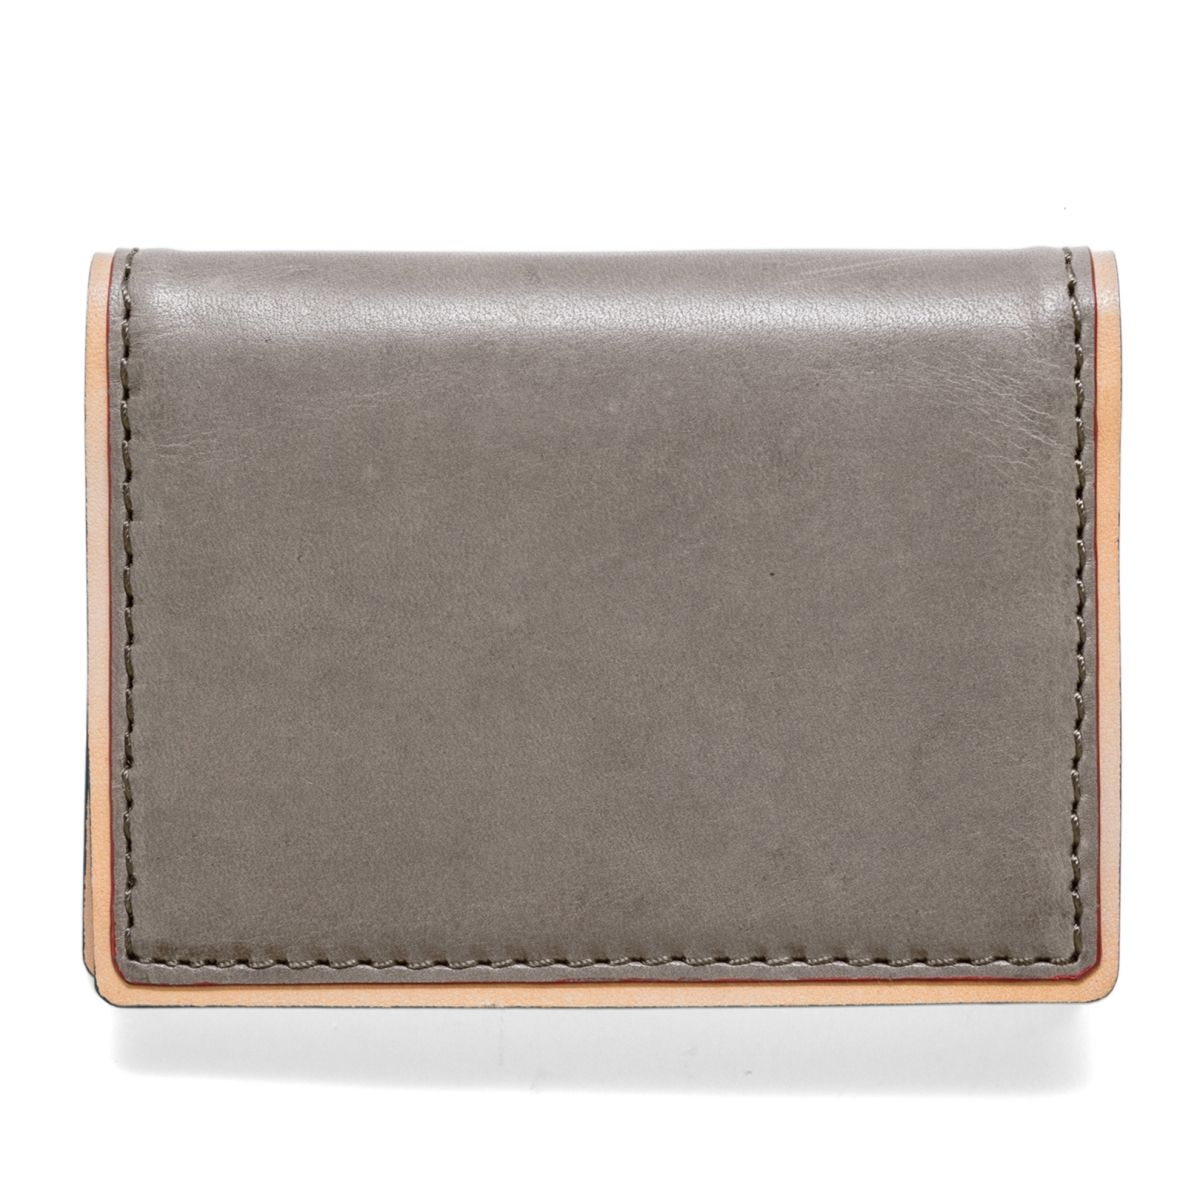 J.FOLD DUOTONE Folding Carrier Leather Wallet - Grey